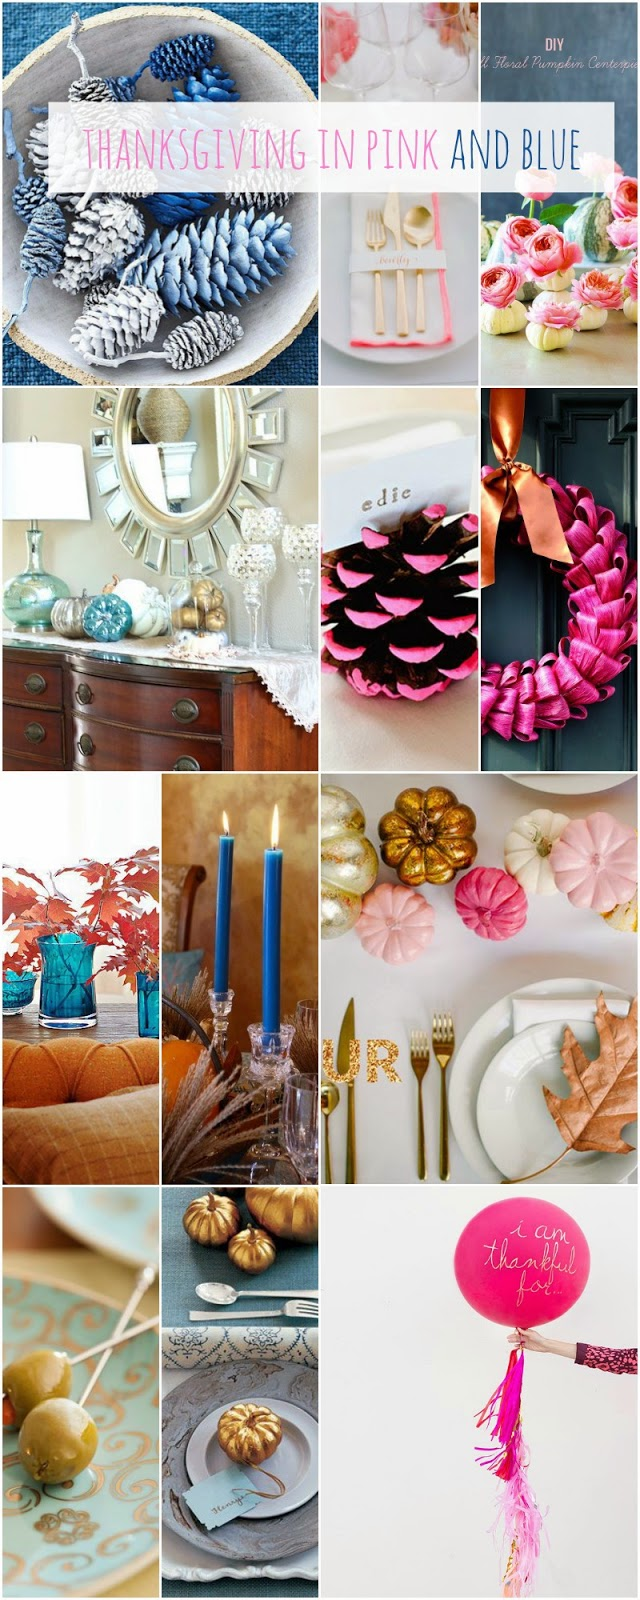 Thanksgiving in pink and blue